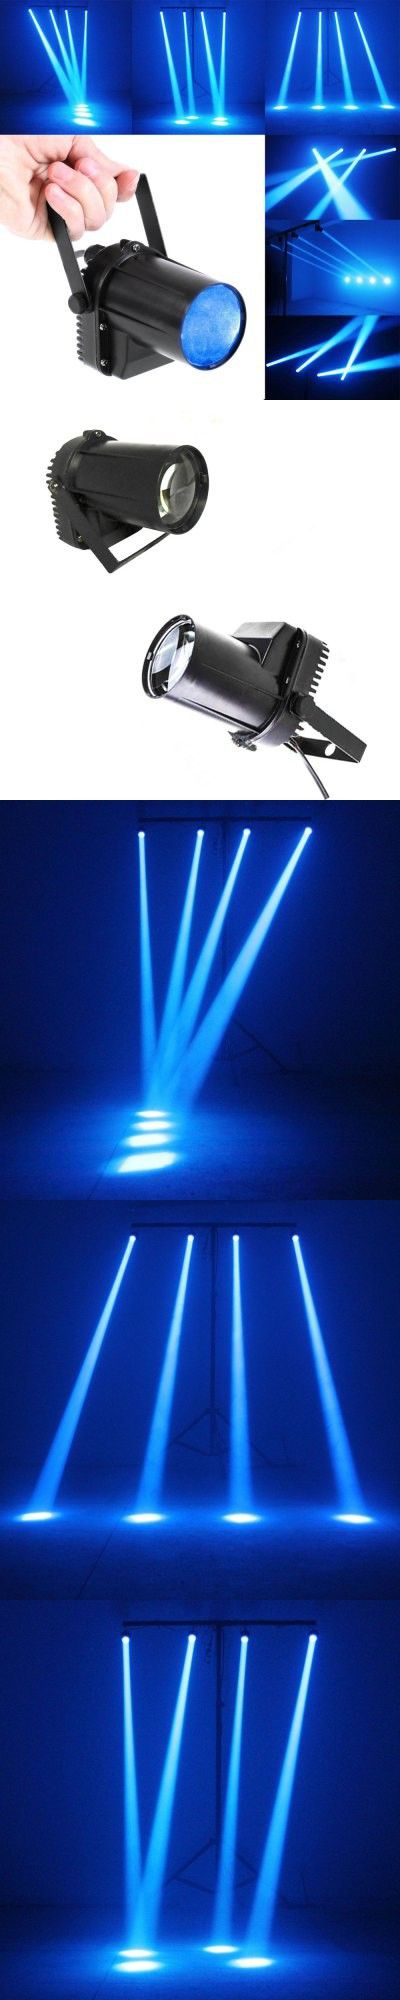 best 灯光 images on pinterest light installation staging and